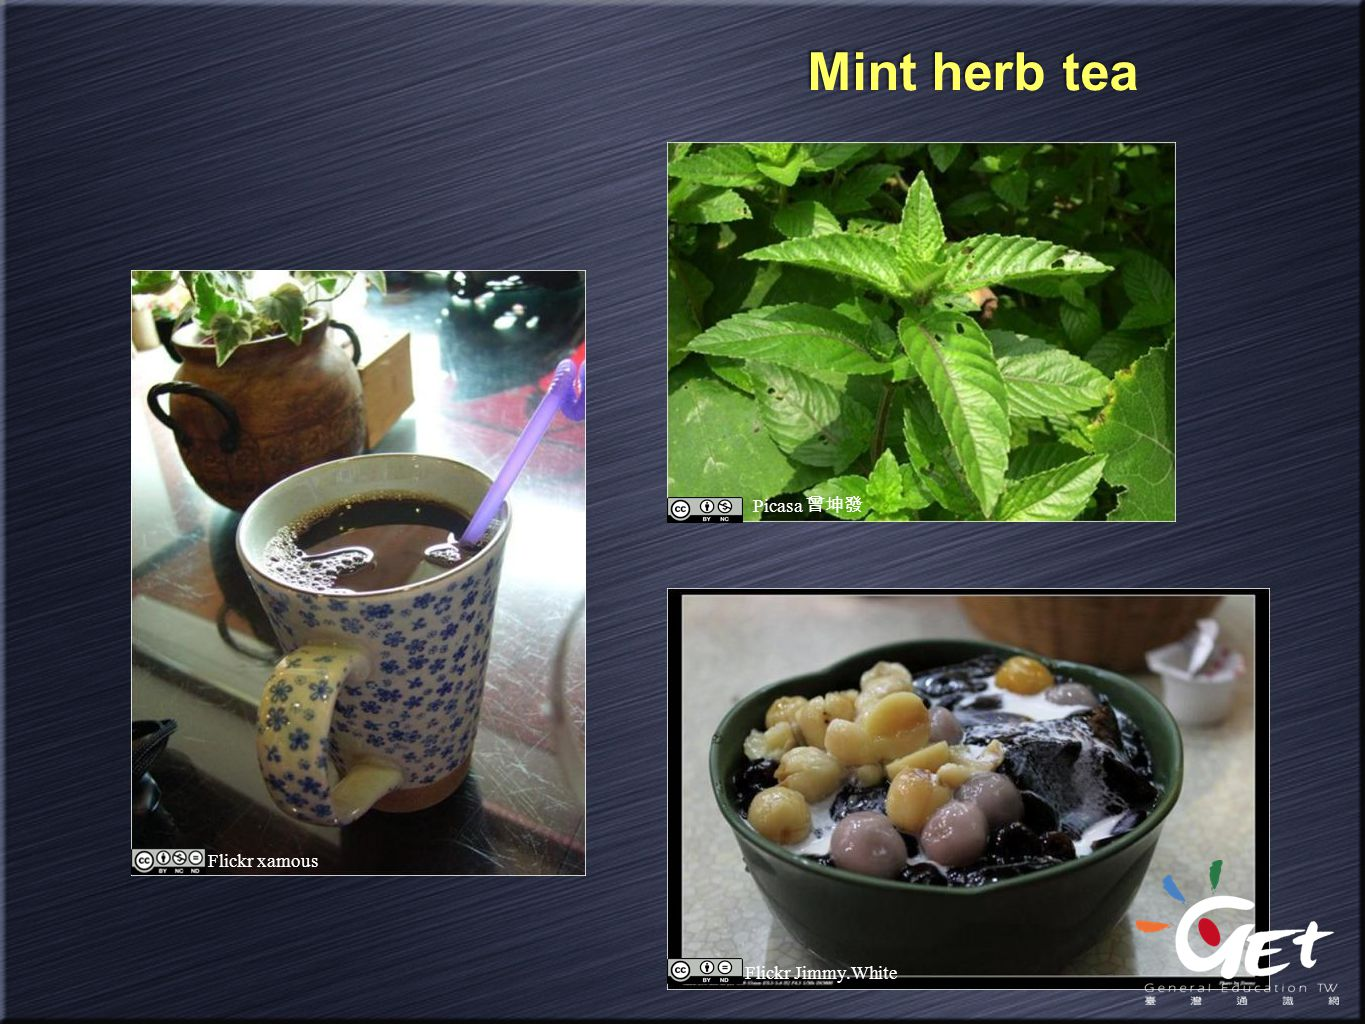 Mint herb tea Picasa 曾坤發 Flickr xamous Flickr Jimmy.White